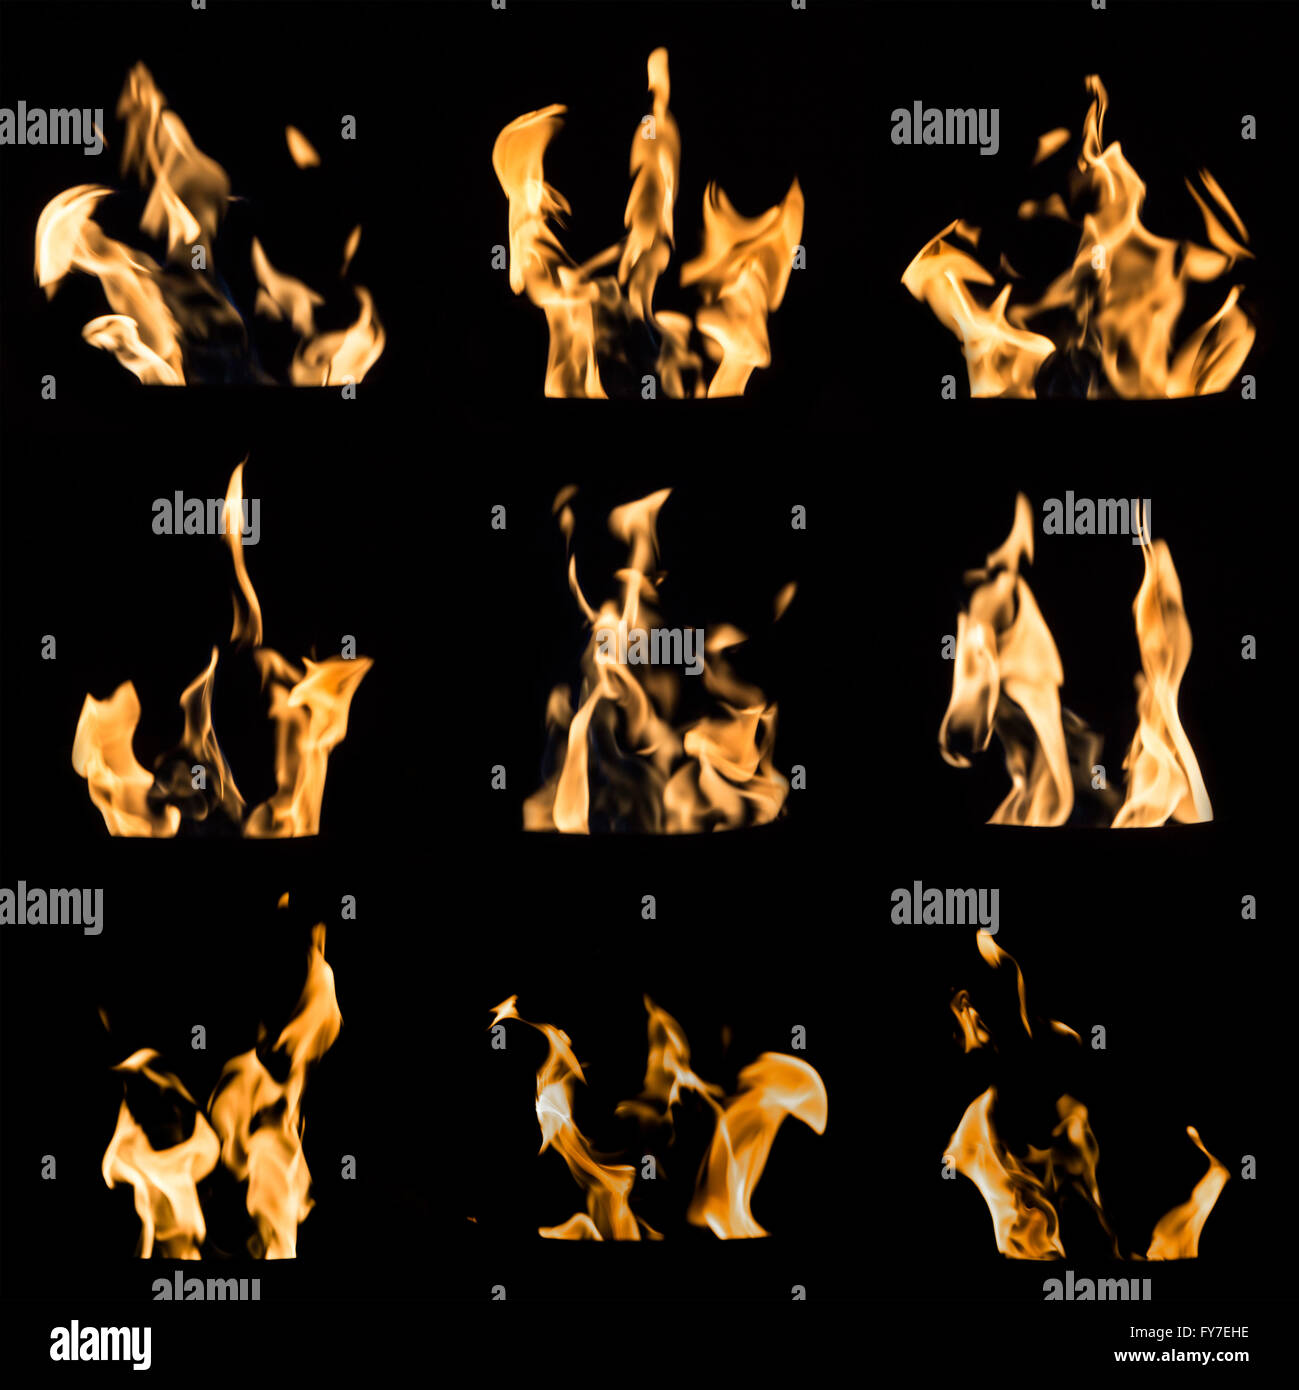 A collage of nine different emerging fire flames on a black background. Compilation image of colorful flames on - Stock Image